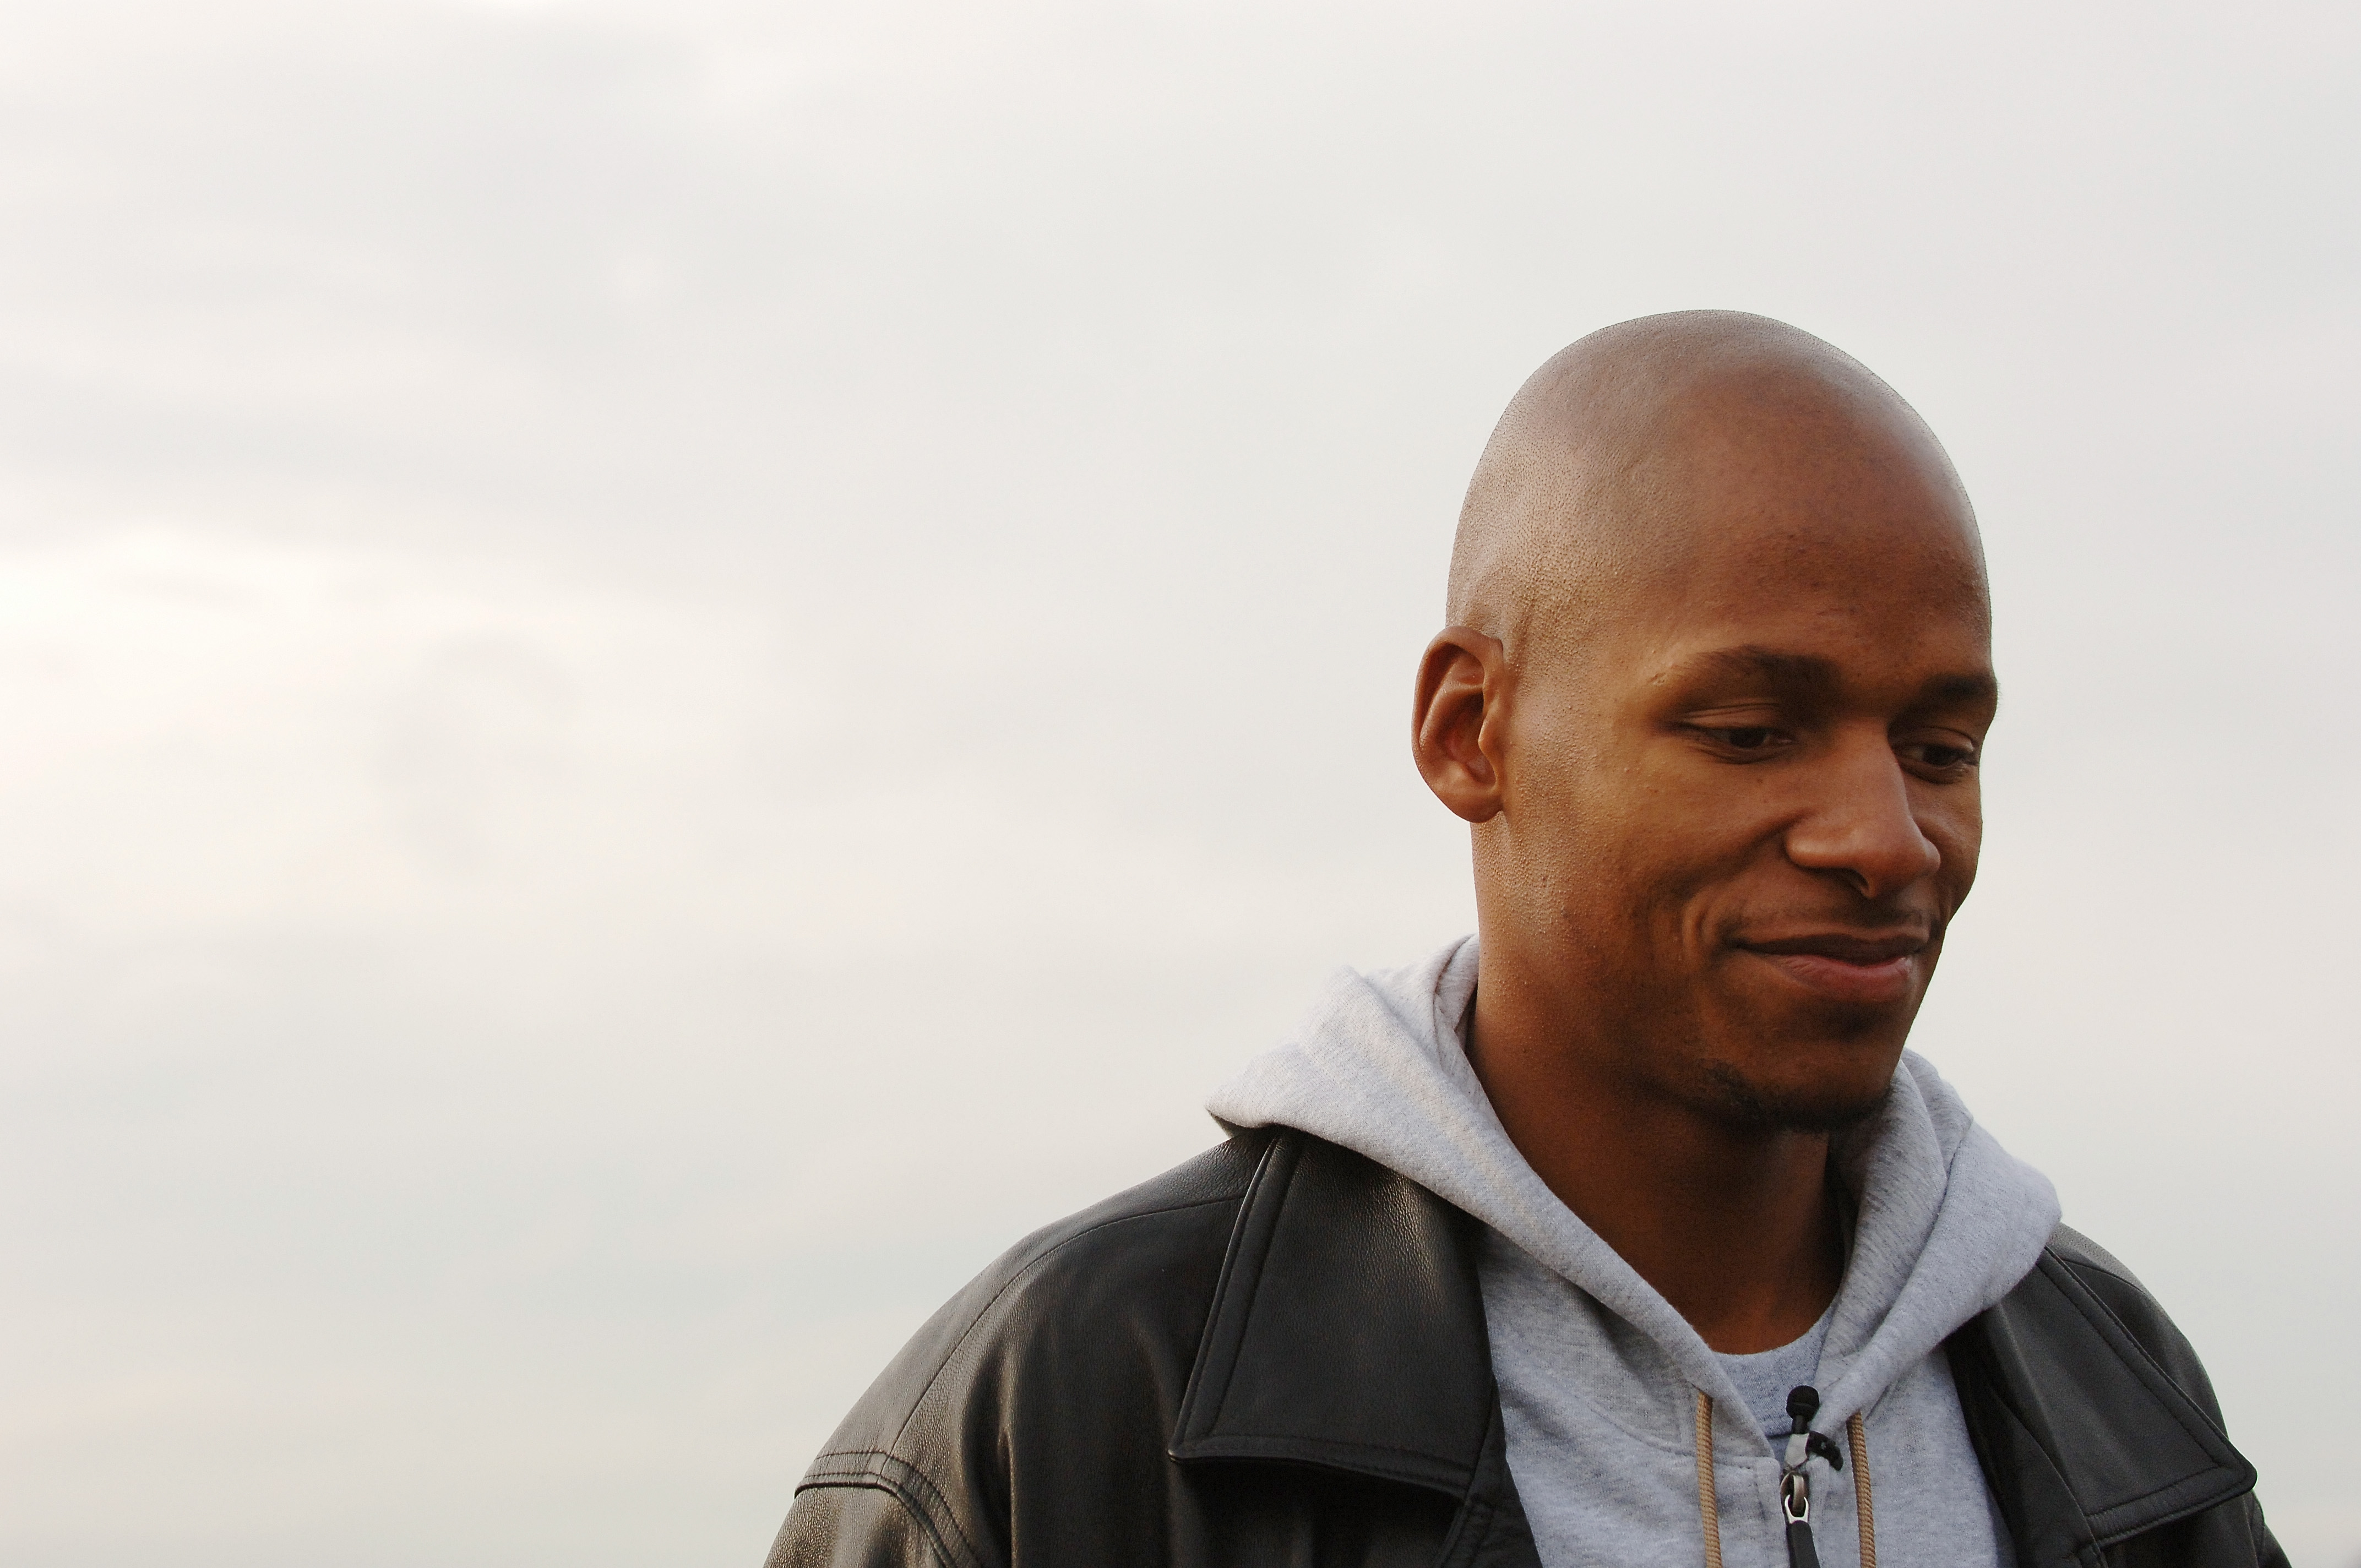 Ray Allen #34 of the Seattle SuperSonics poses for a portrait on November 29, 2006 in Seattle, Washington.